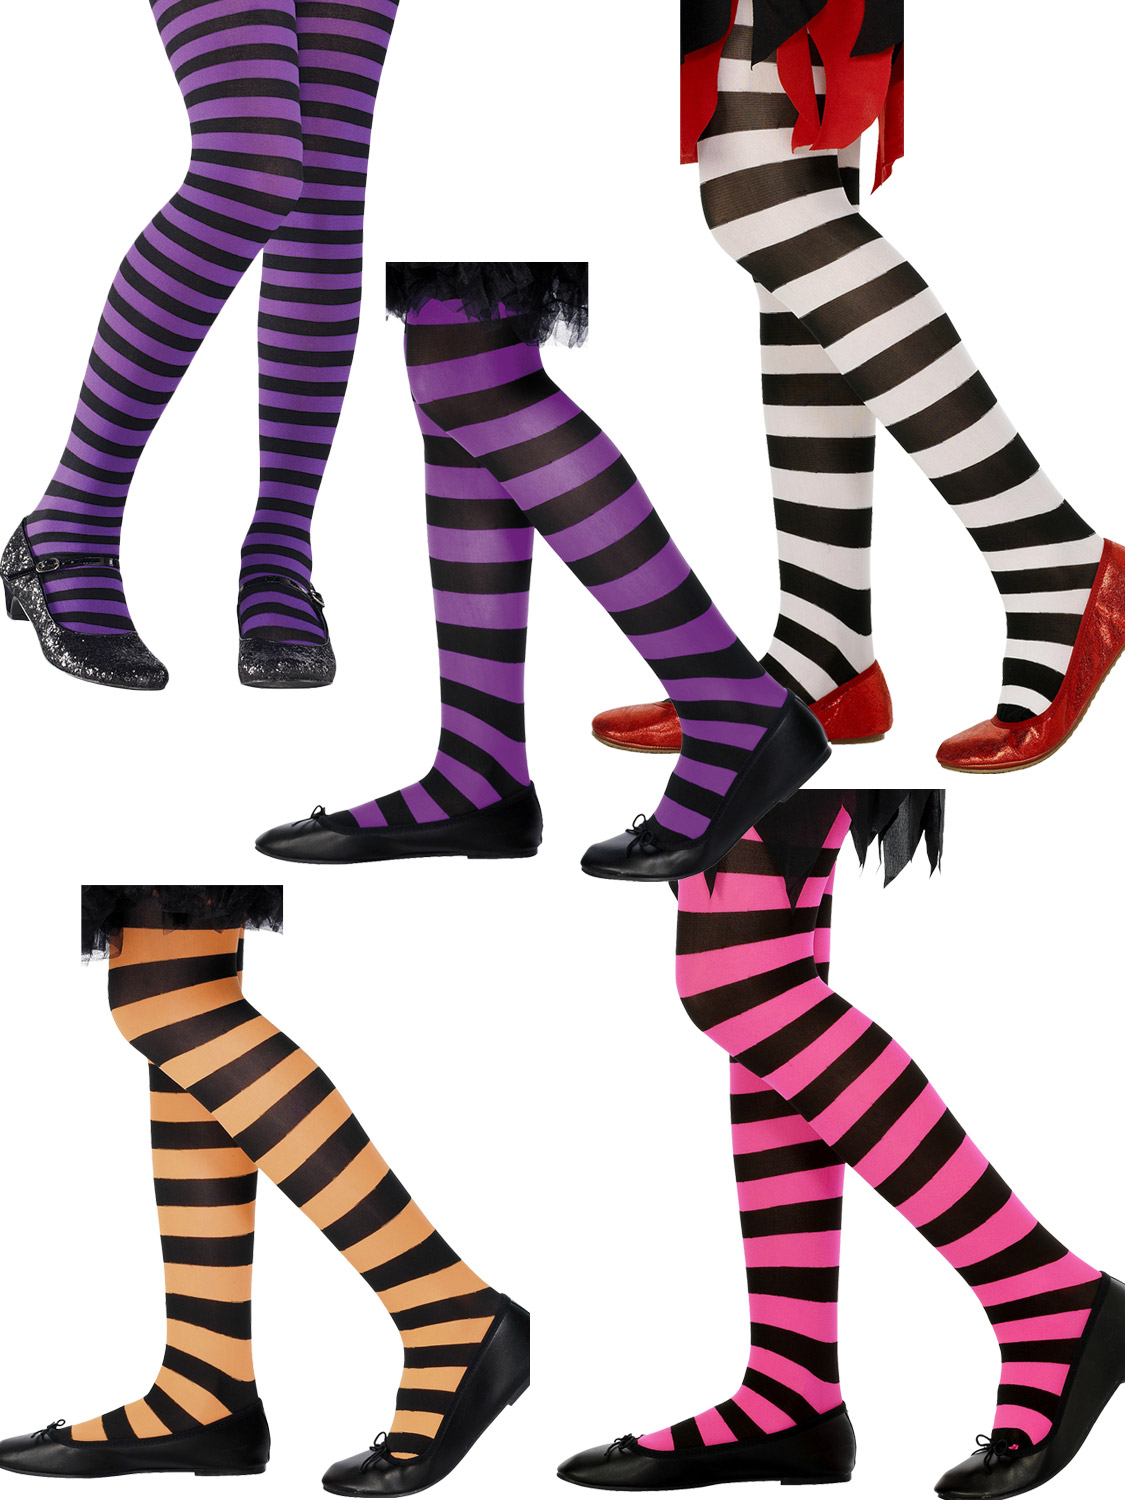 Black and Pink Striped Tights Girls Halloween Witch Fancy Dress Kids Costume Acc